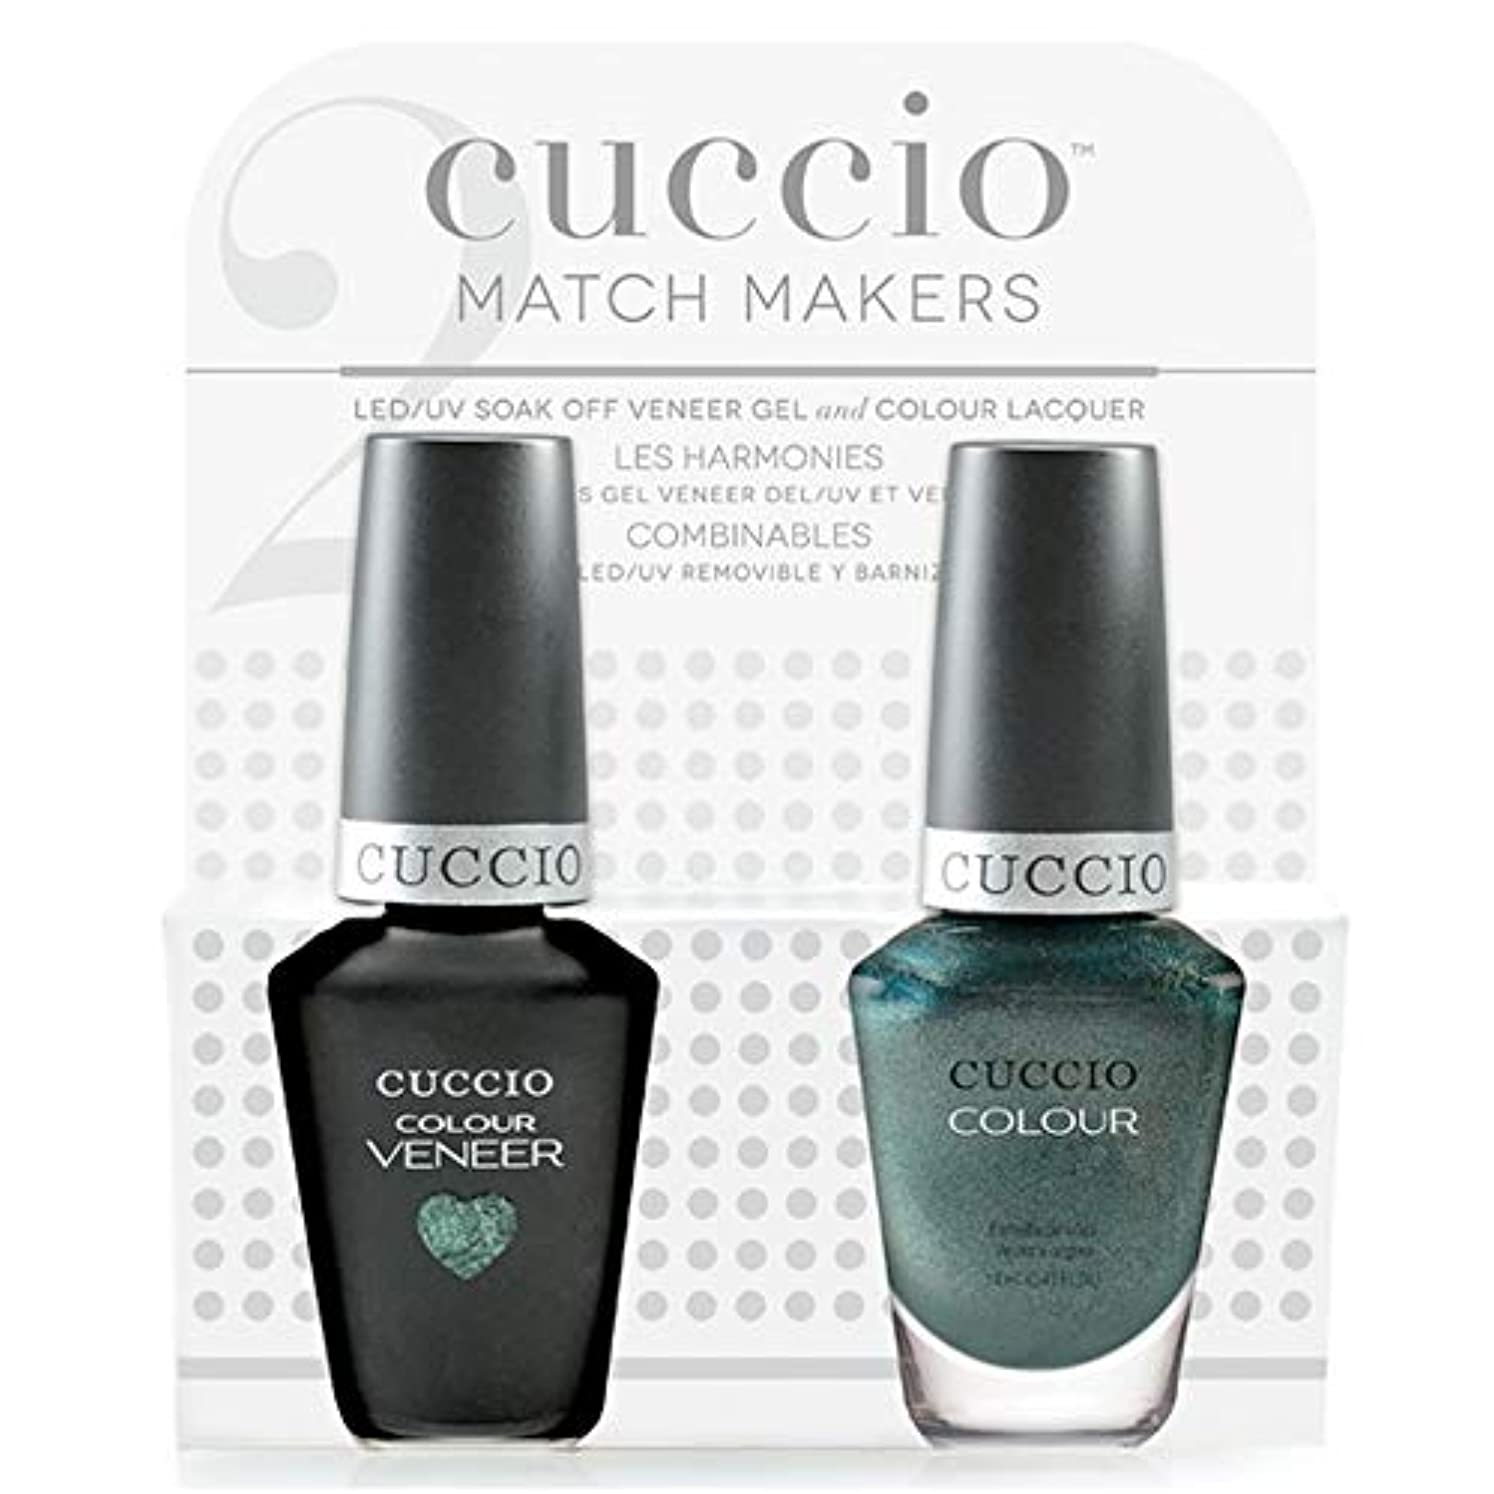 Cuccio MatchMakers Veneer & Lacquer - Notorious - 0.43oz / 13ml Each